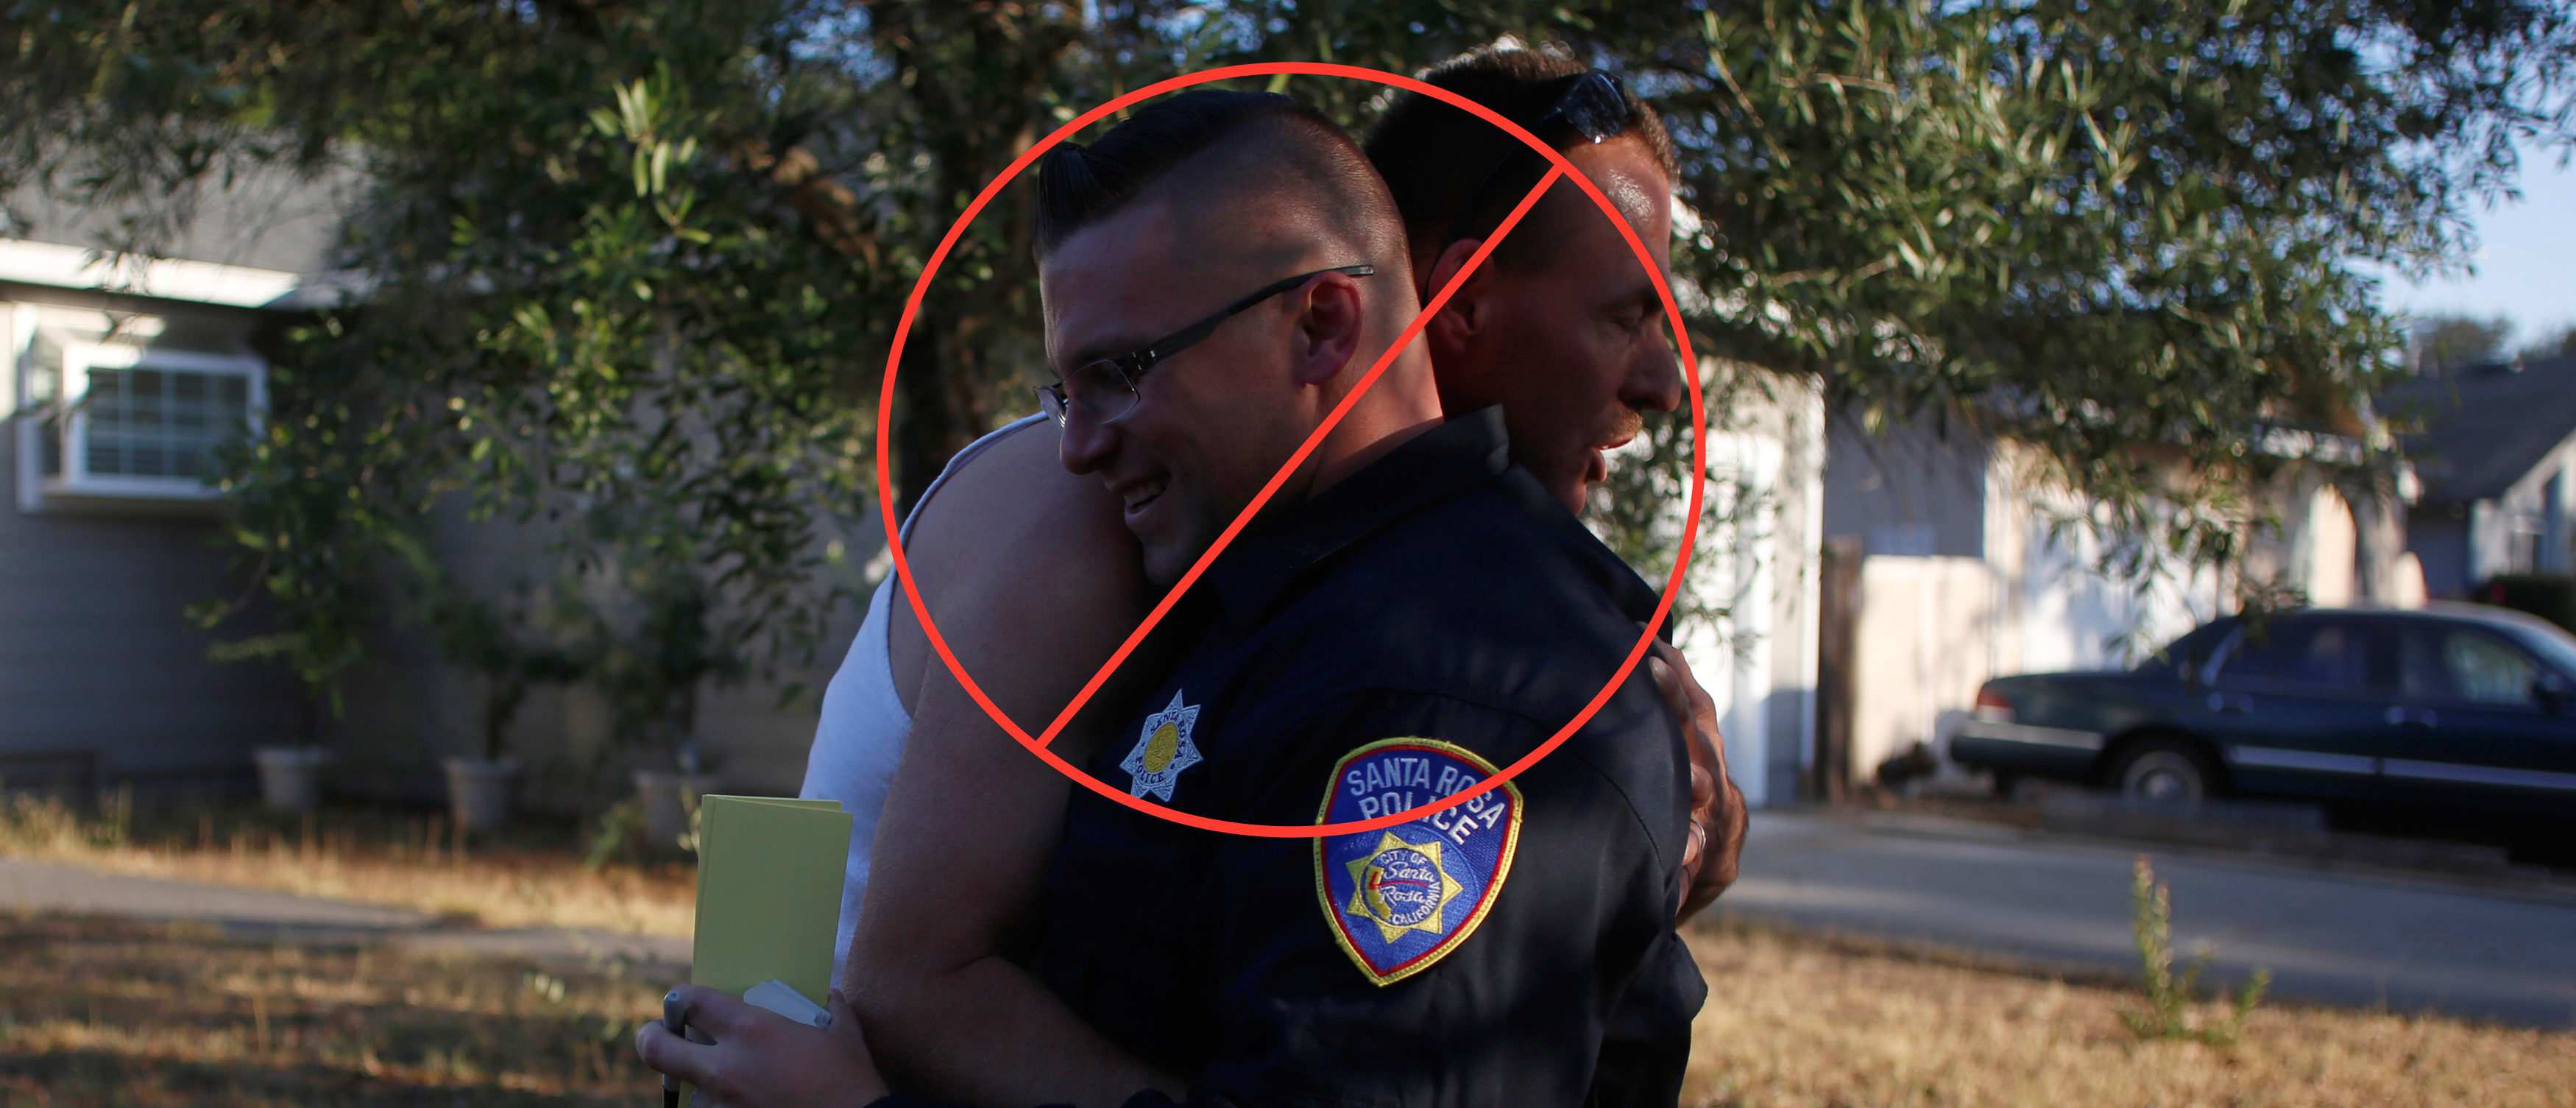 Calvin Sanders hugs Santa Rosa police officer Travis Dunn while receiving a pass that allows him to come and go from the evacuation zone he lives in after a wildfire tore through adjacent streets in Santa Rosa, California, U.S. October 15, 2017. REUTERS/Jim Urquhart